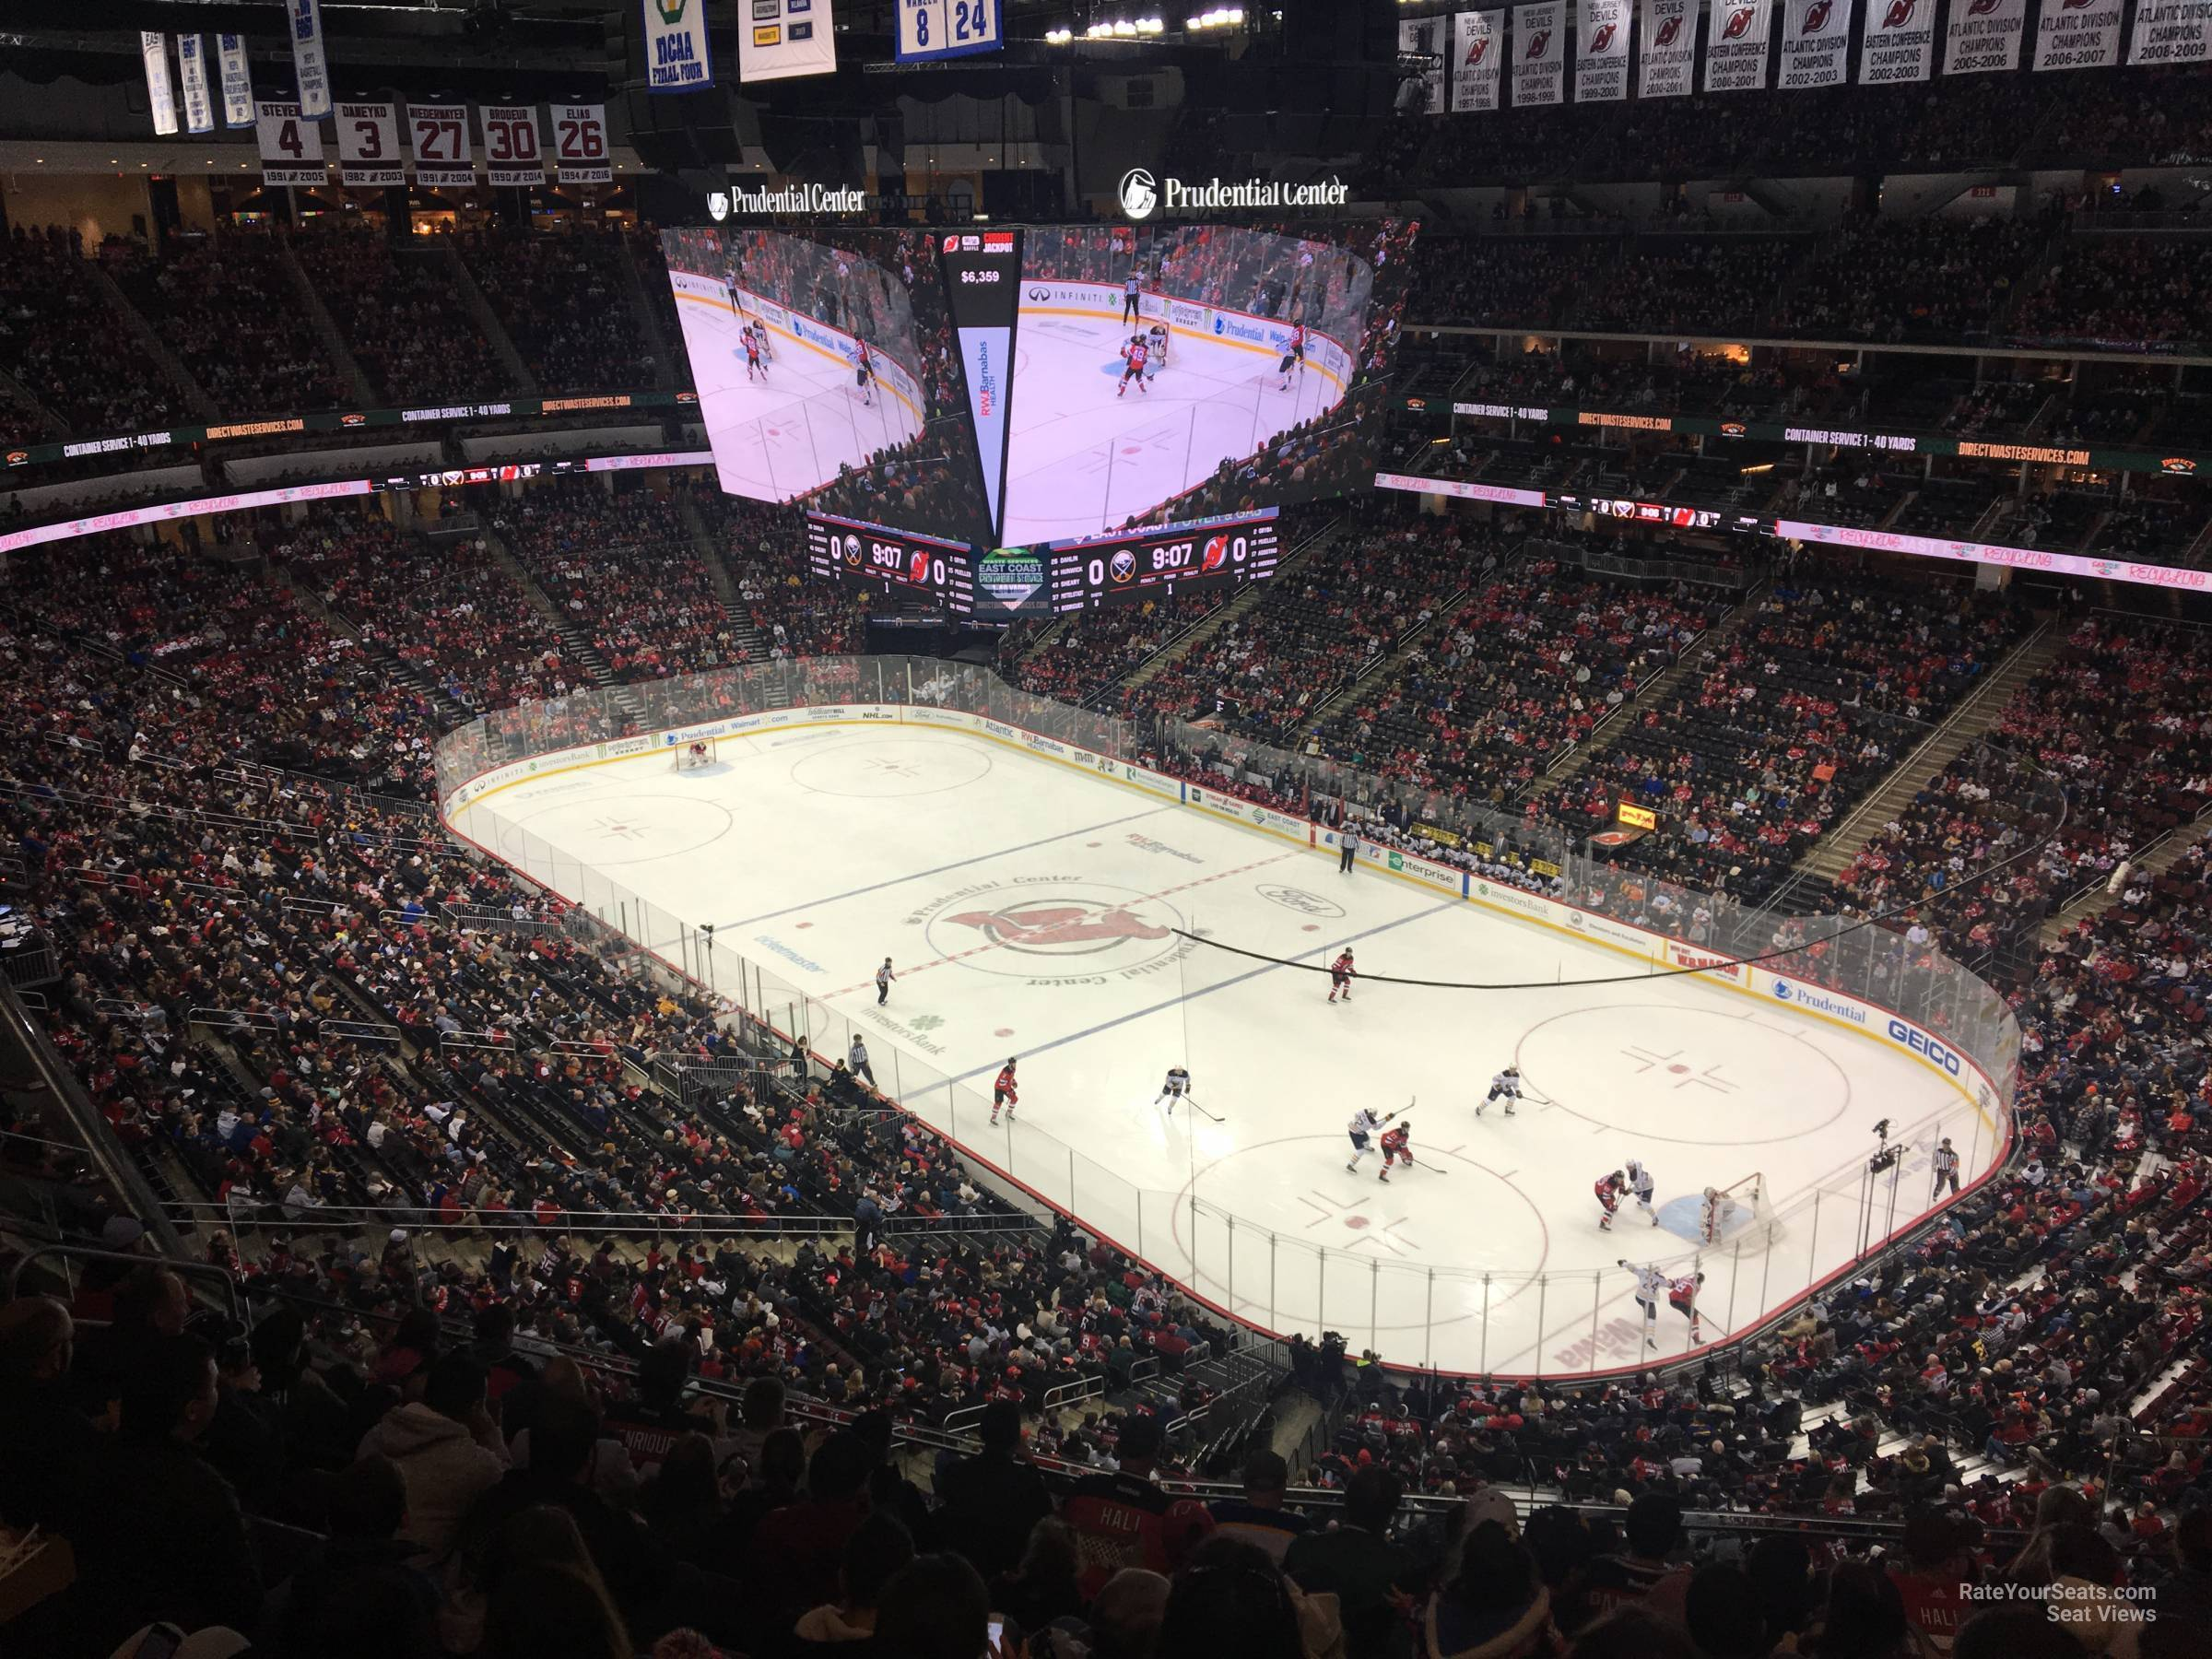 New Jersey Devils Seat View for Prudential Center Section 133, Row 6